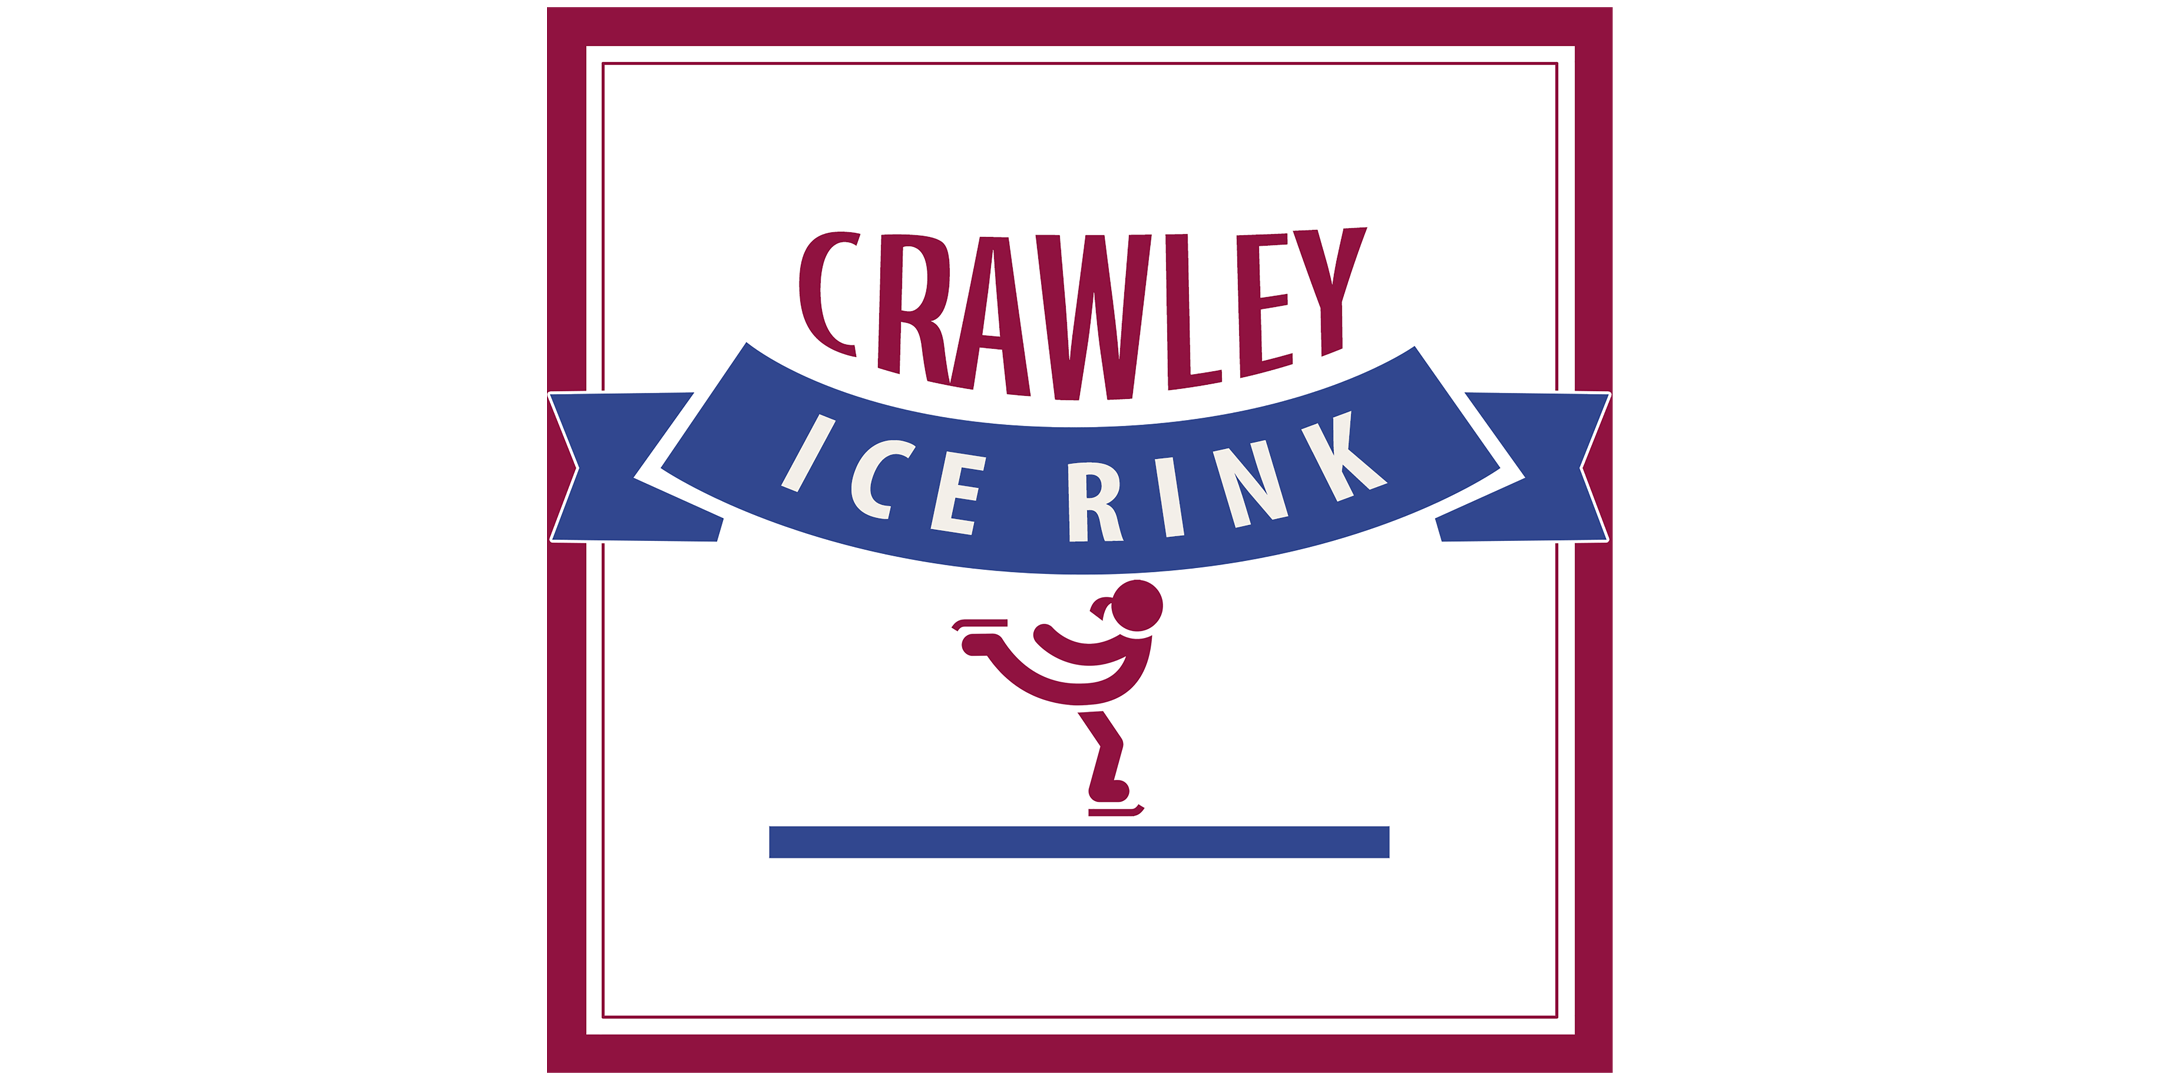 Crawley Ice Rink - 26th November (Off Peak)